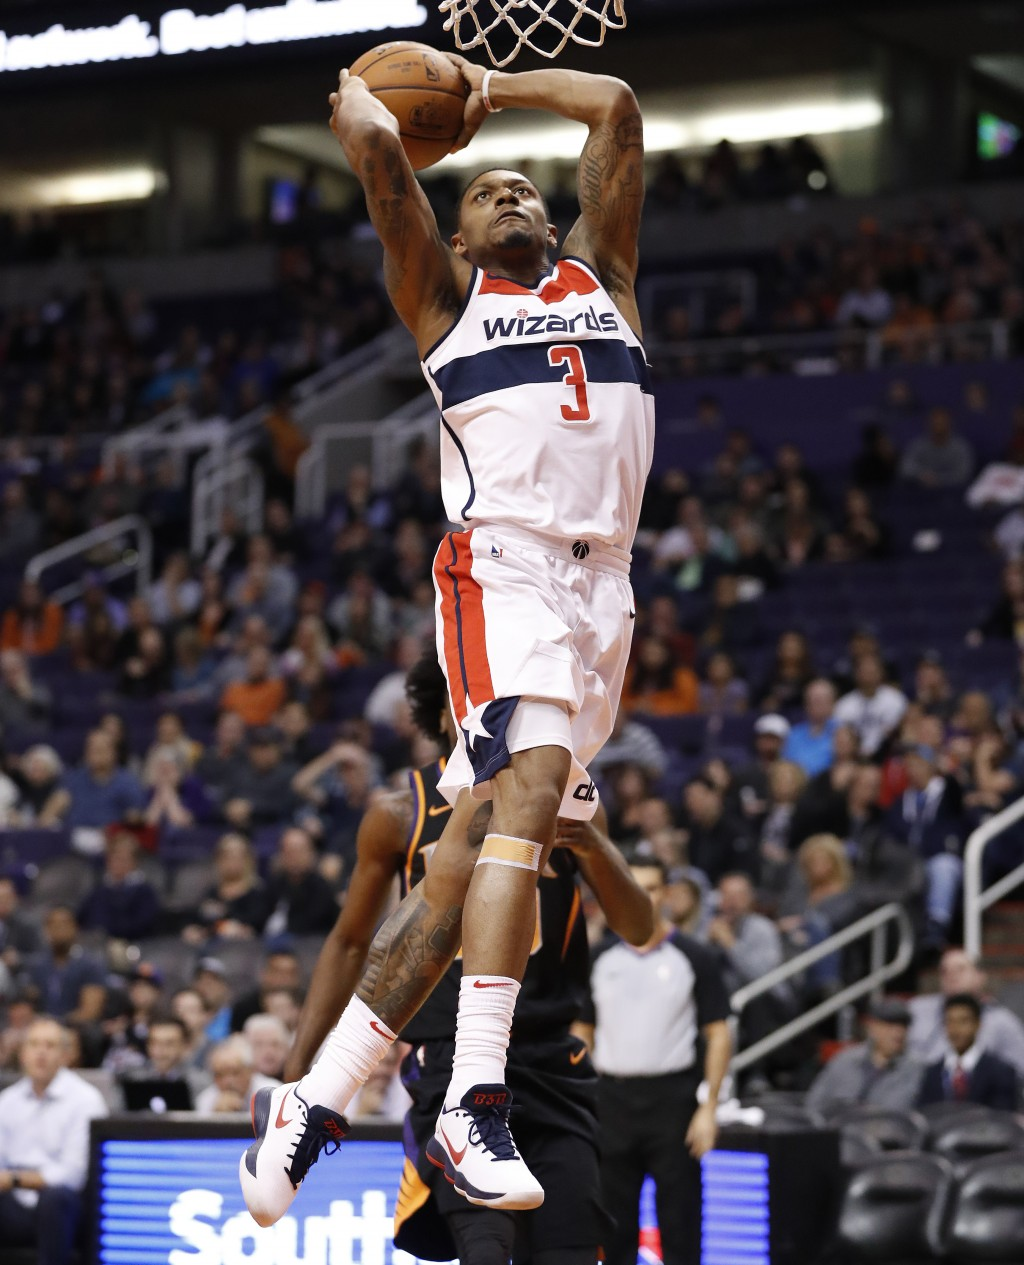 Washington Wizards guard Bradley Beal (3) dunks against the Phoenix Suns during the first half of an NBA basketball game, Thursday, Dec. 7, 2017, in P